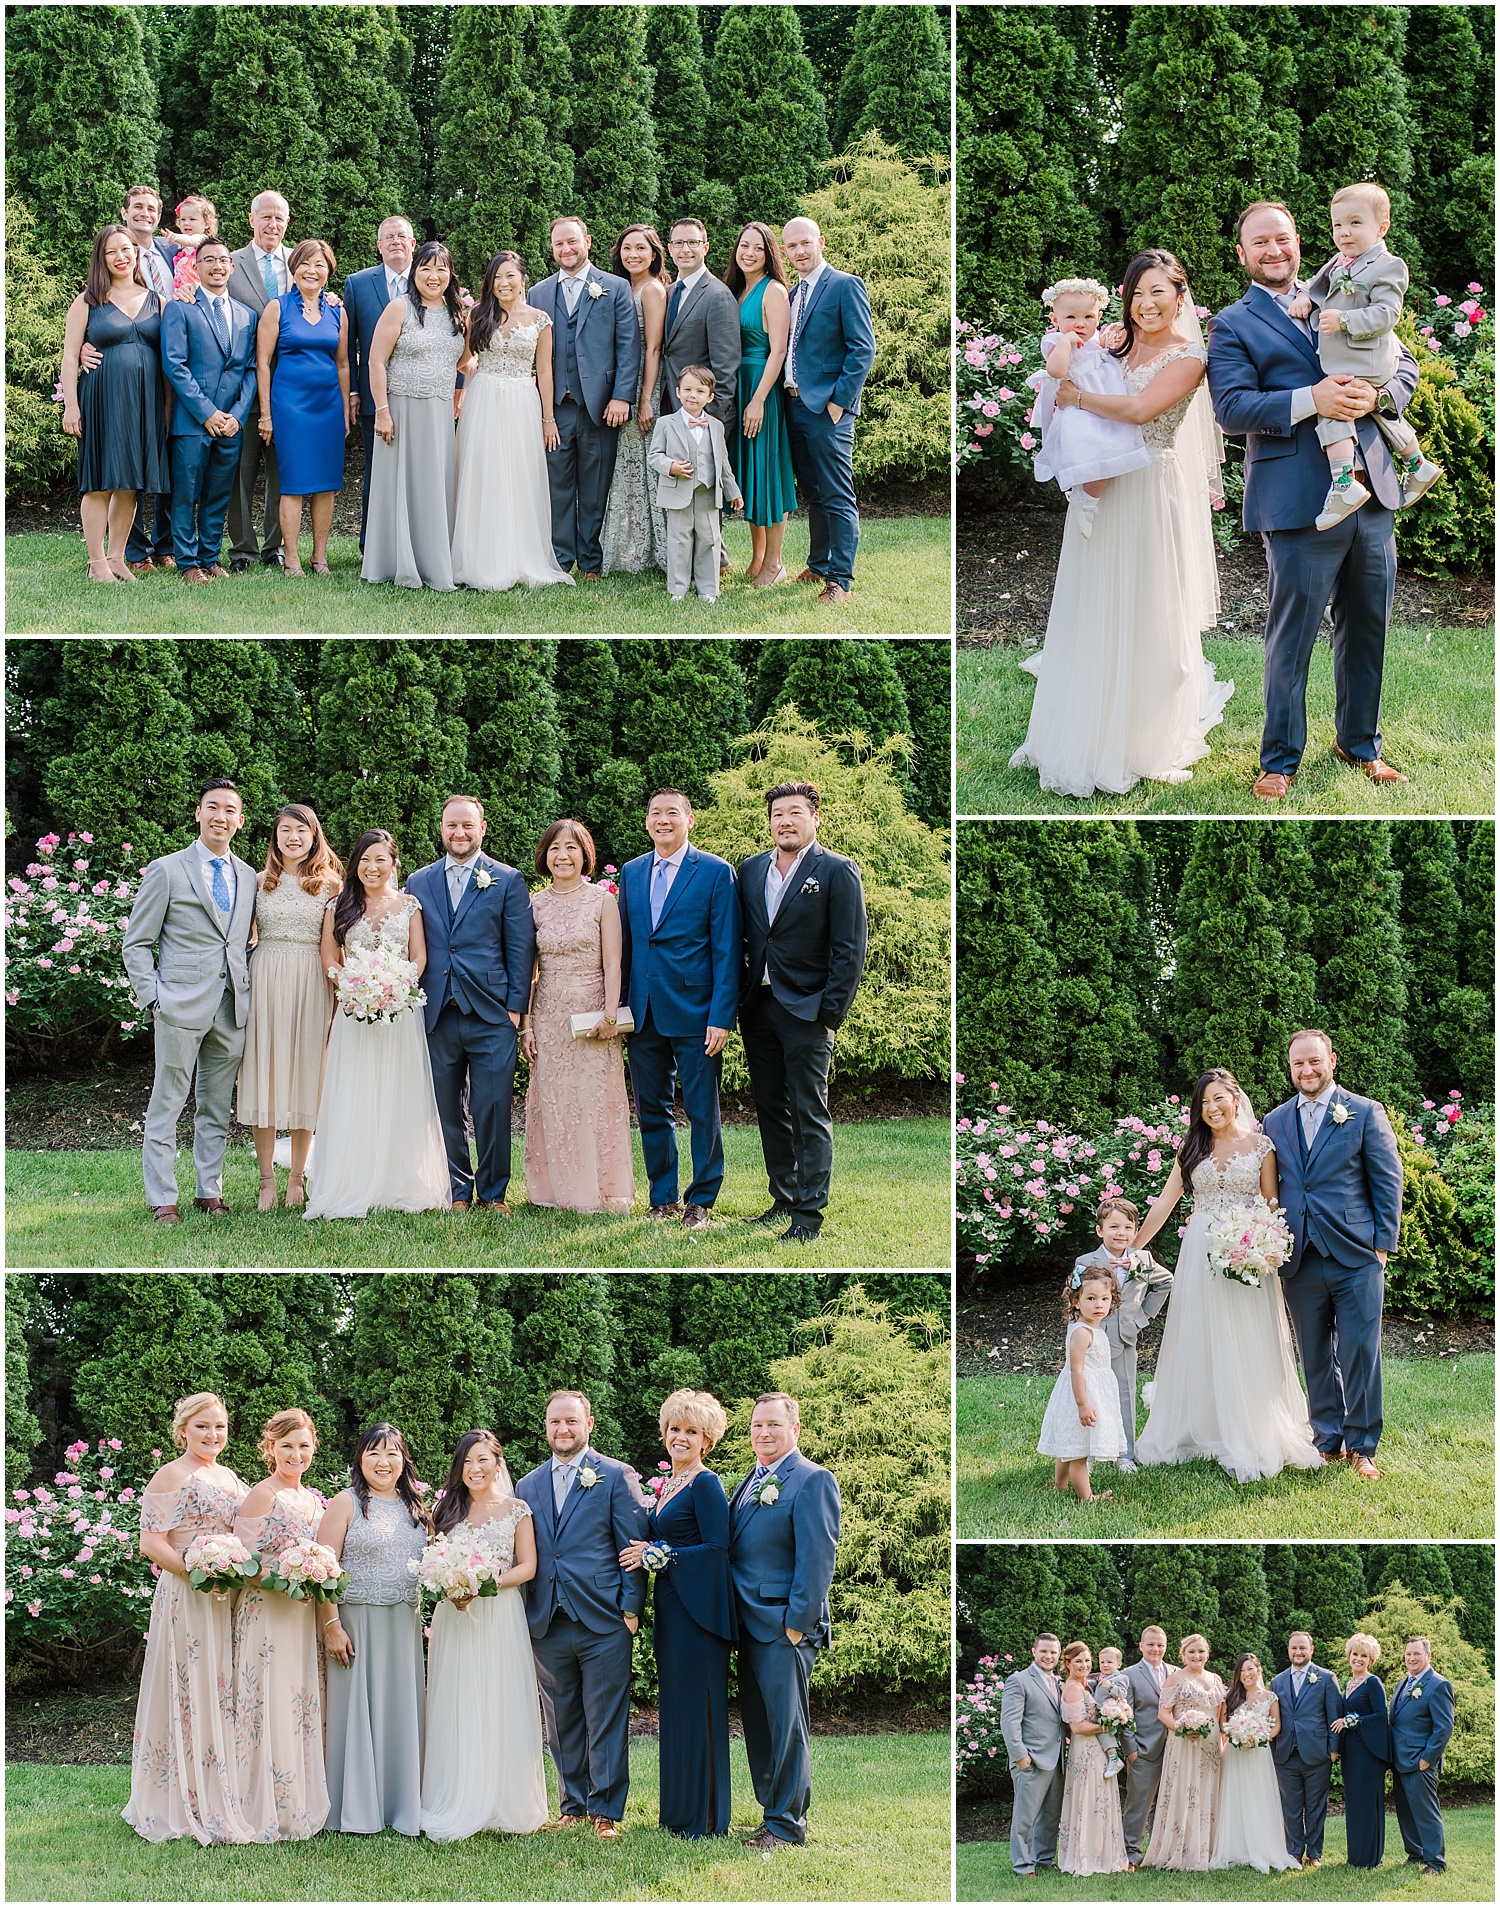 new jersey outdoor wedding, Monmouth University Wilson Hall, natural light photographer, family formals